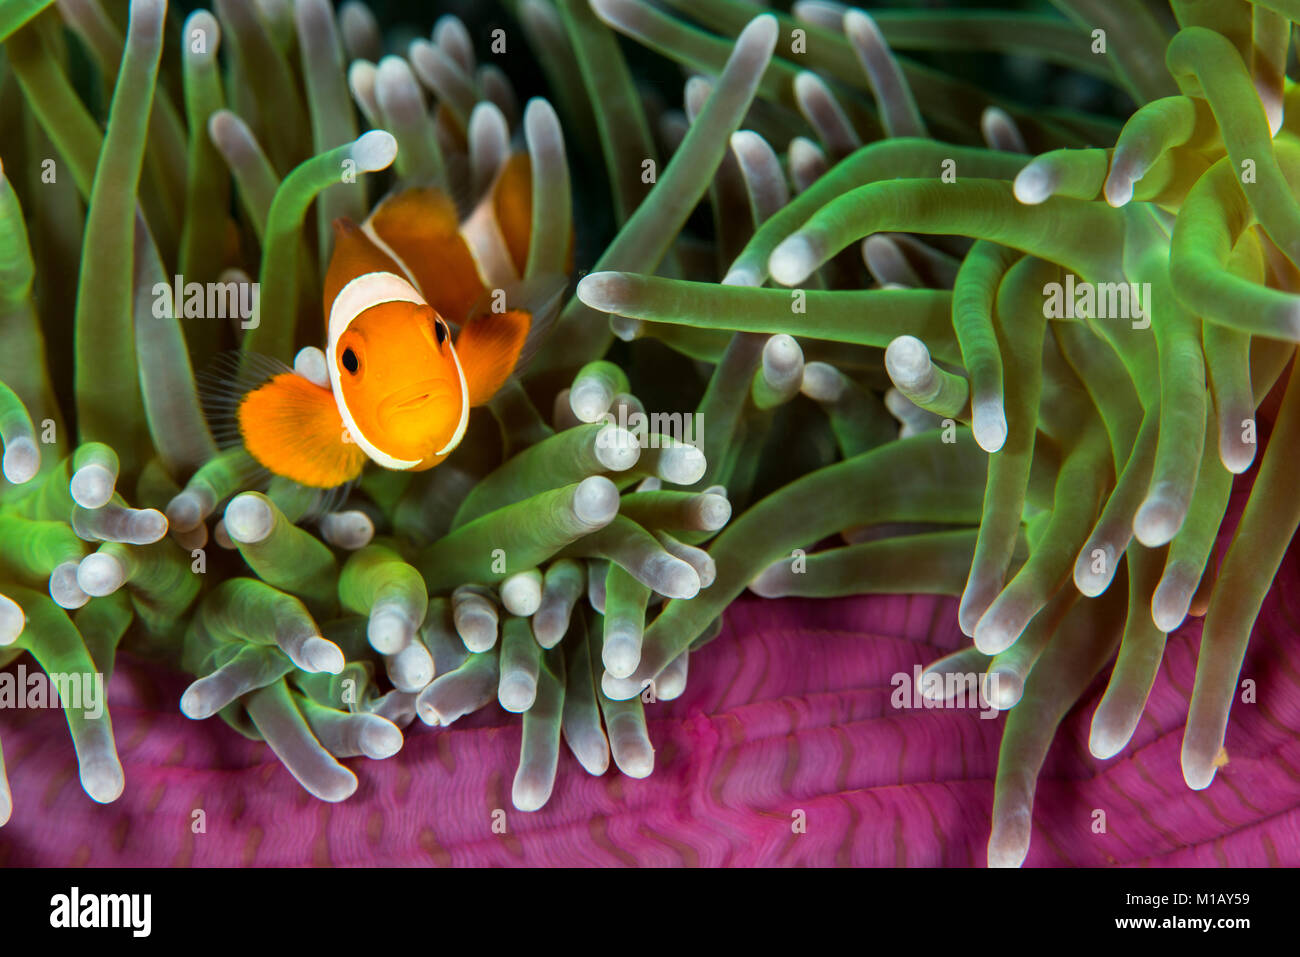 An underwater photo of a juvenile False Clown Anemonefish looking out from the edge of a Magnificent Sea Anemone, Stock Photo